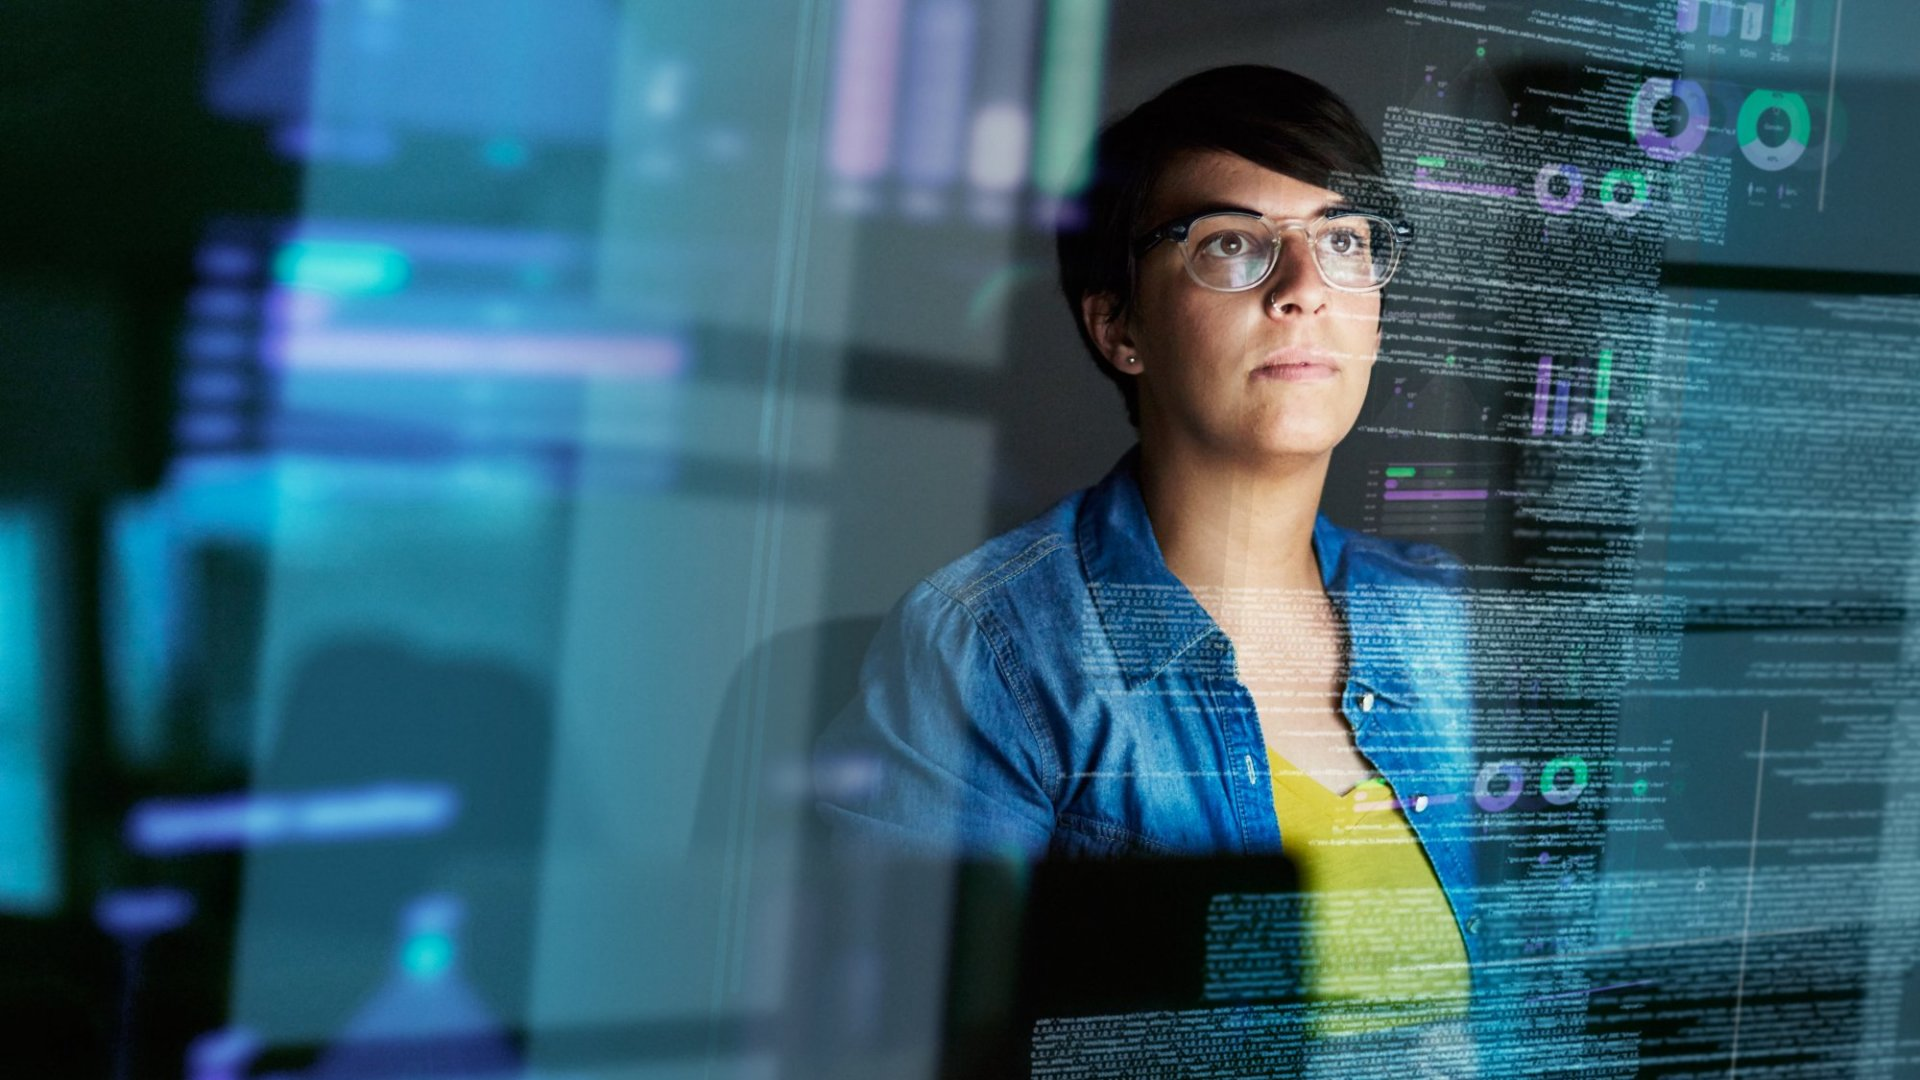 Top Digital Experts Share How Current Data Trends can Drive Business Success